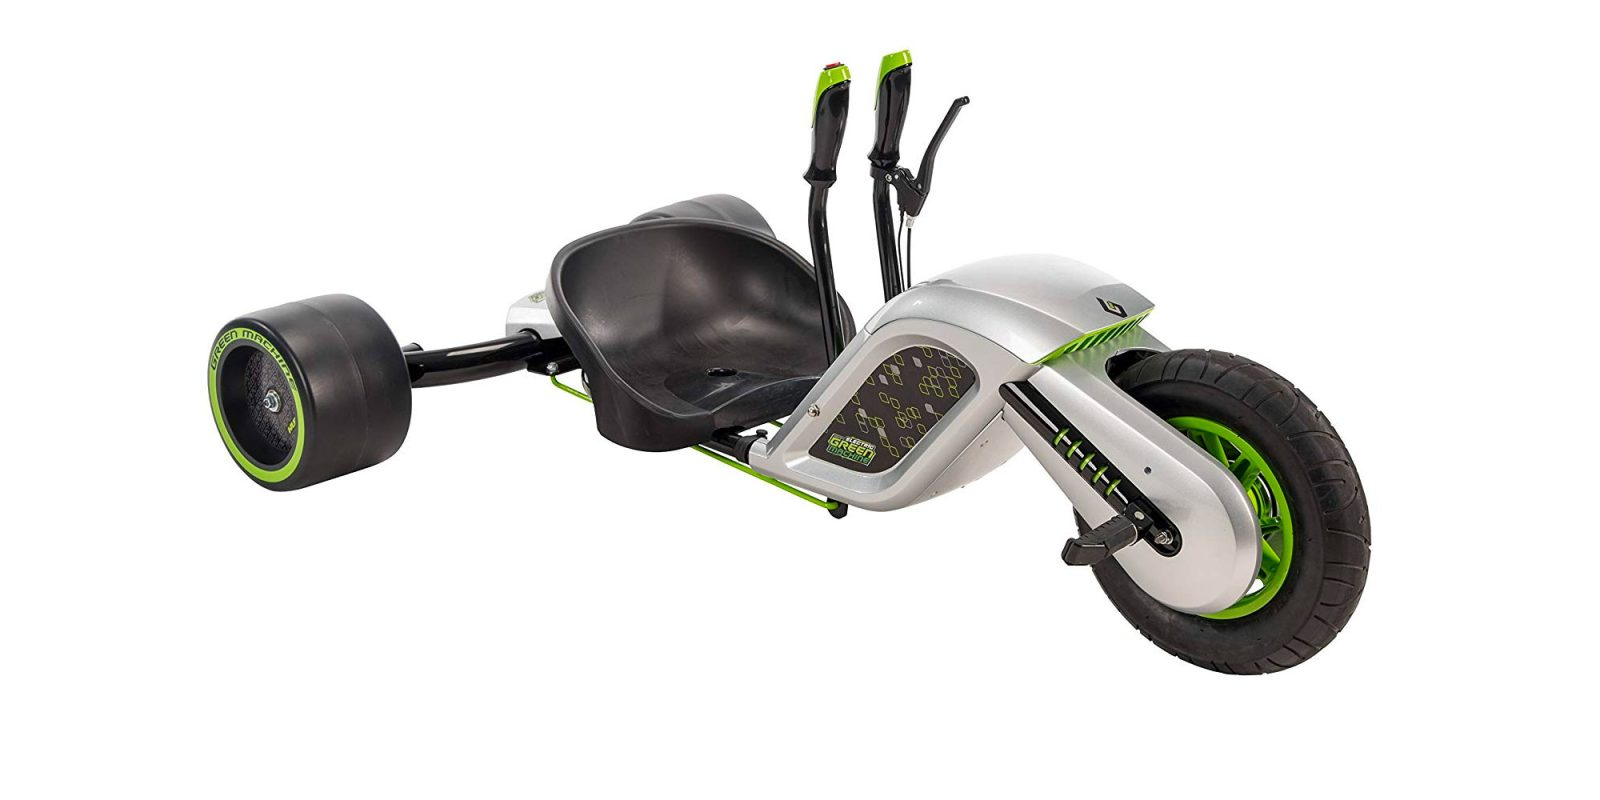 Huffy's electric Green Machine gets $80 price drop to $99 at Amazon + Walmart